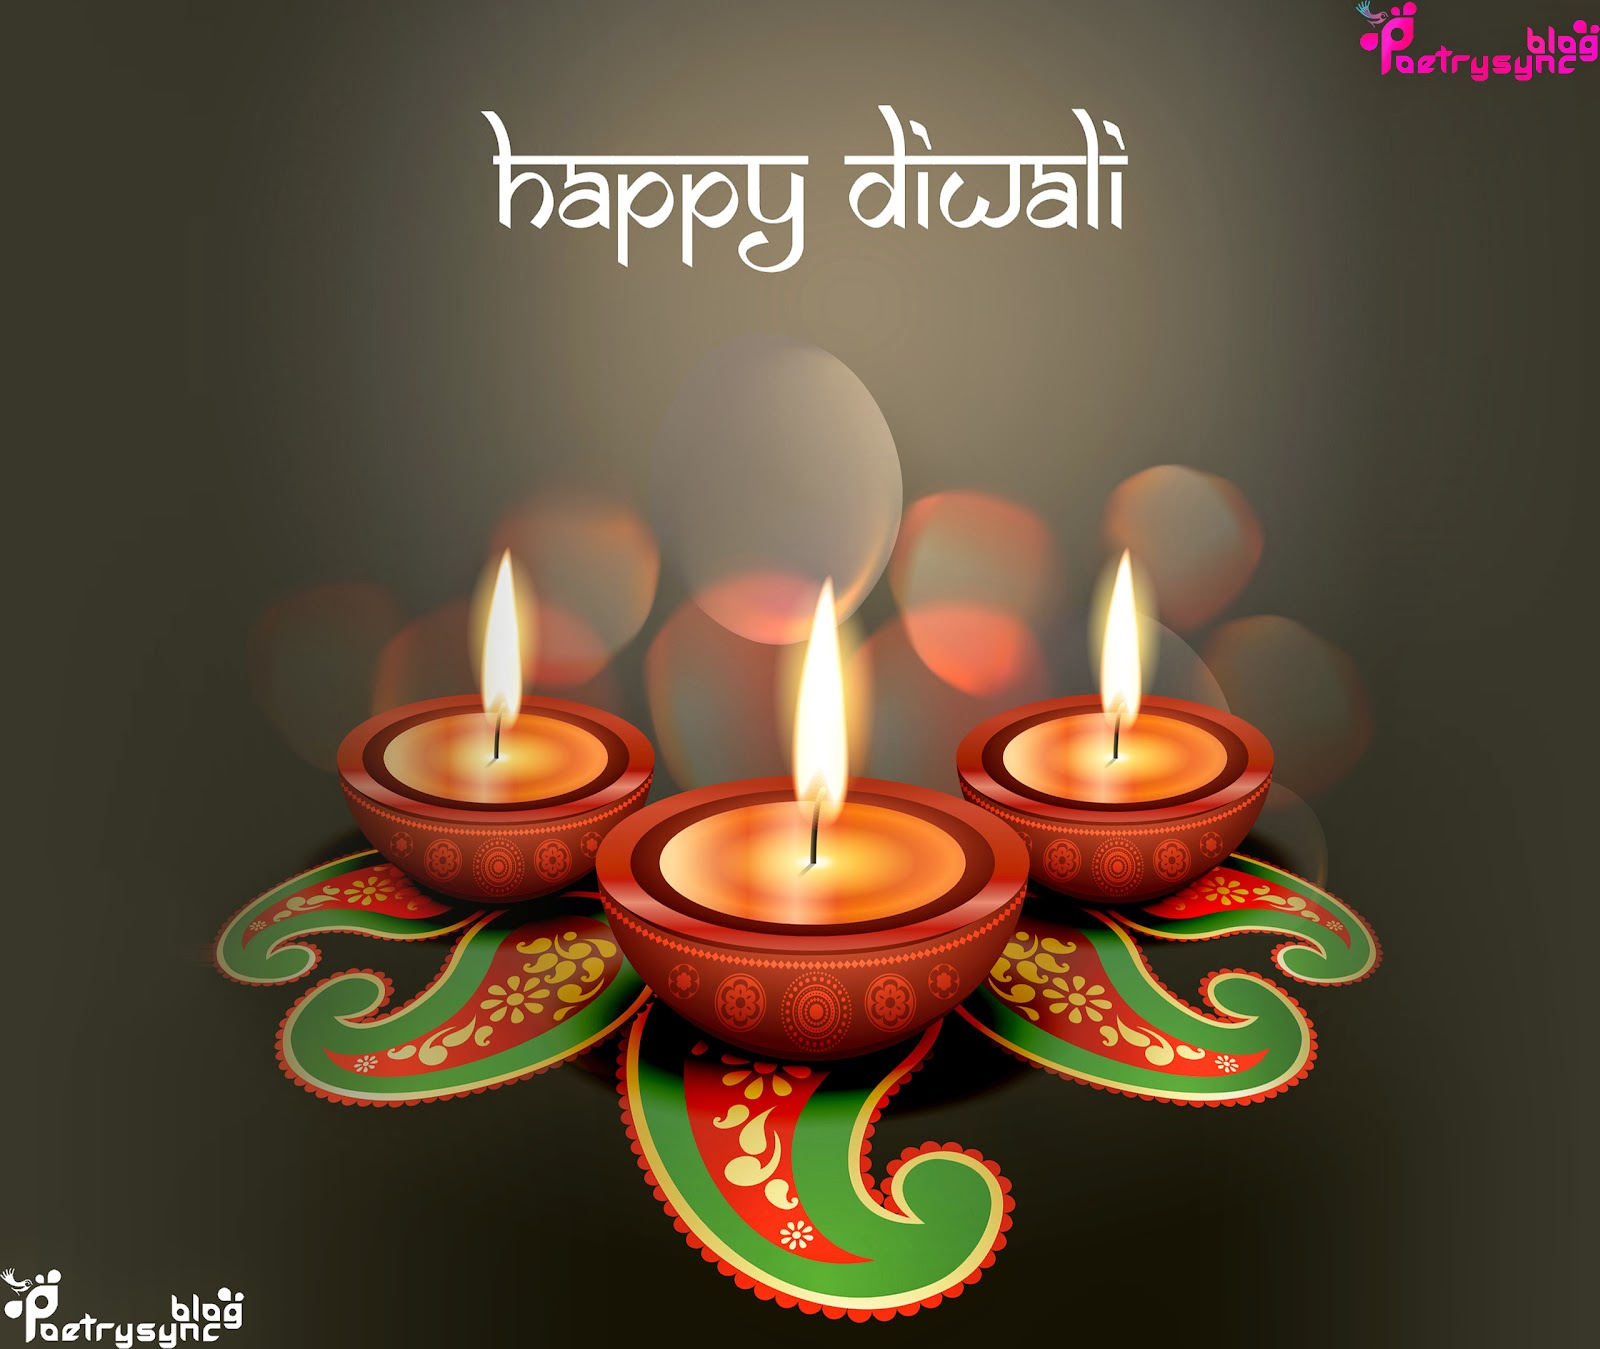 Diwali festival essay best diwali facts ideas diwali diwali happy happy diwali festival wishes messages in english happy diwali festival wishes messages in english poetry quotes m4hsunfo